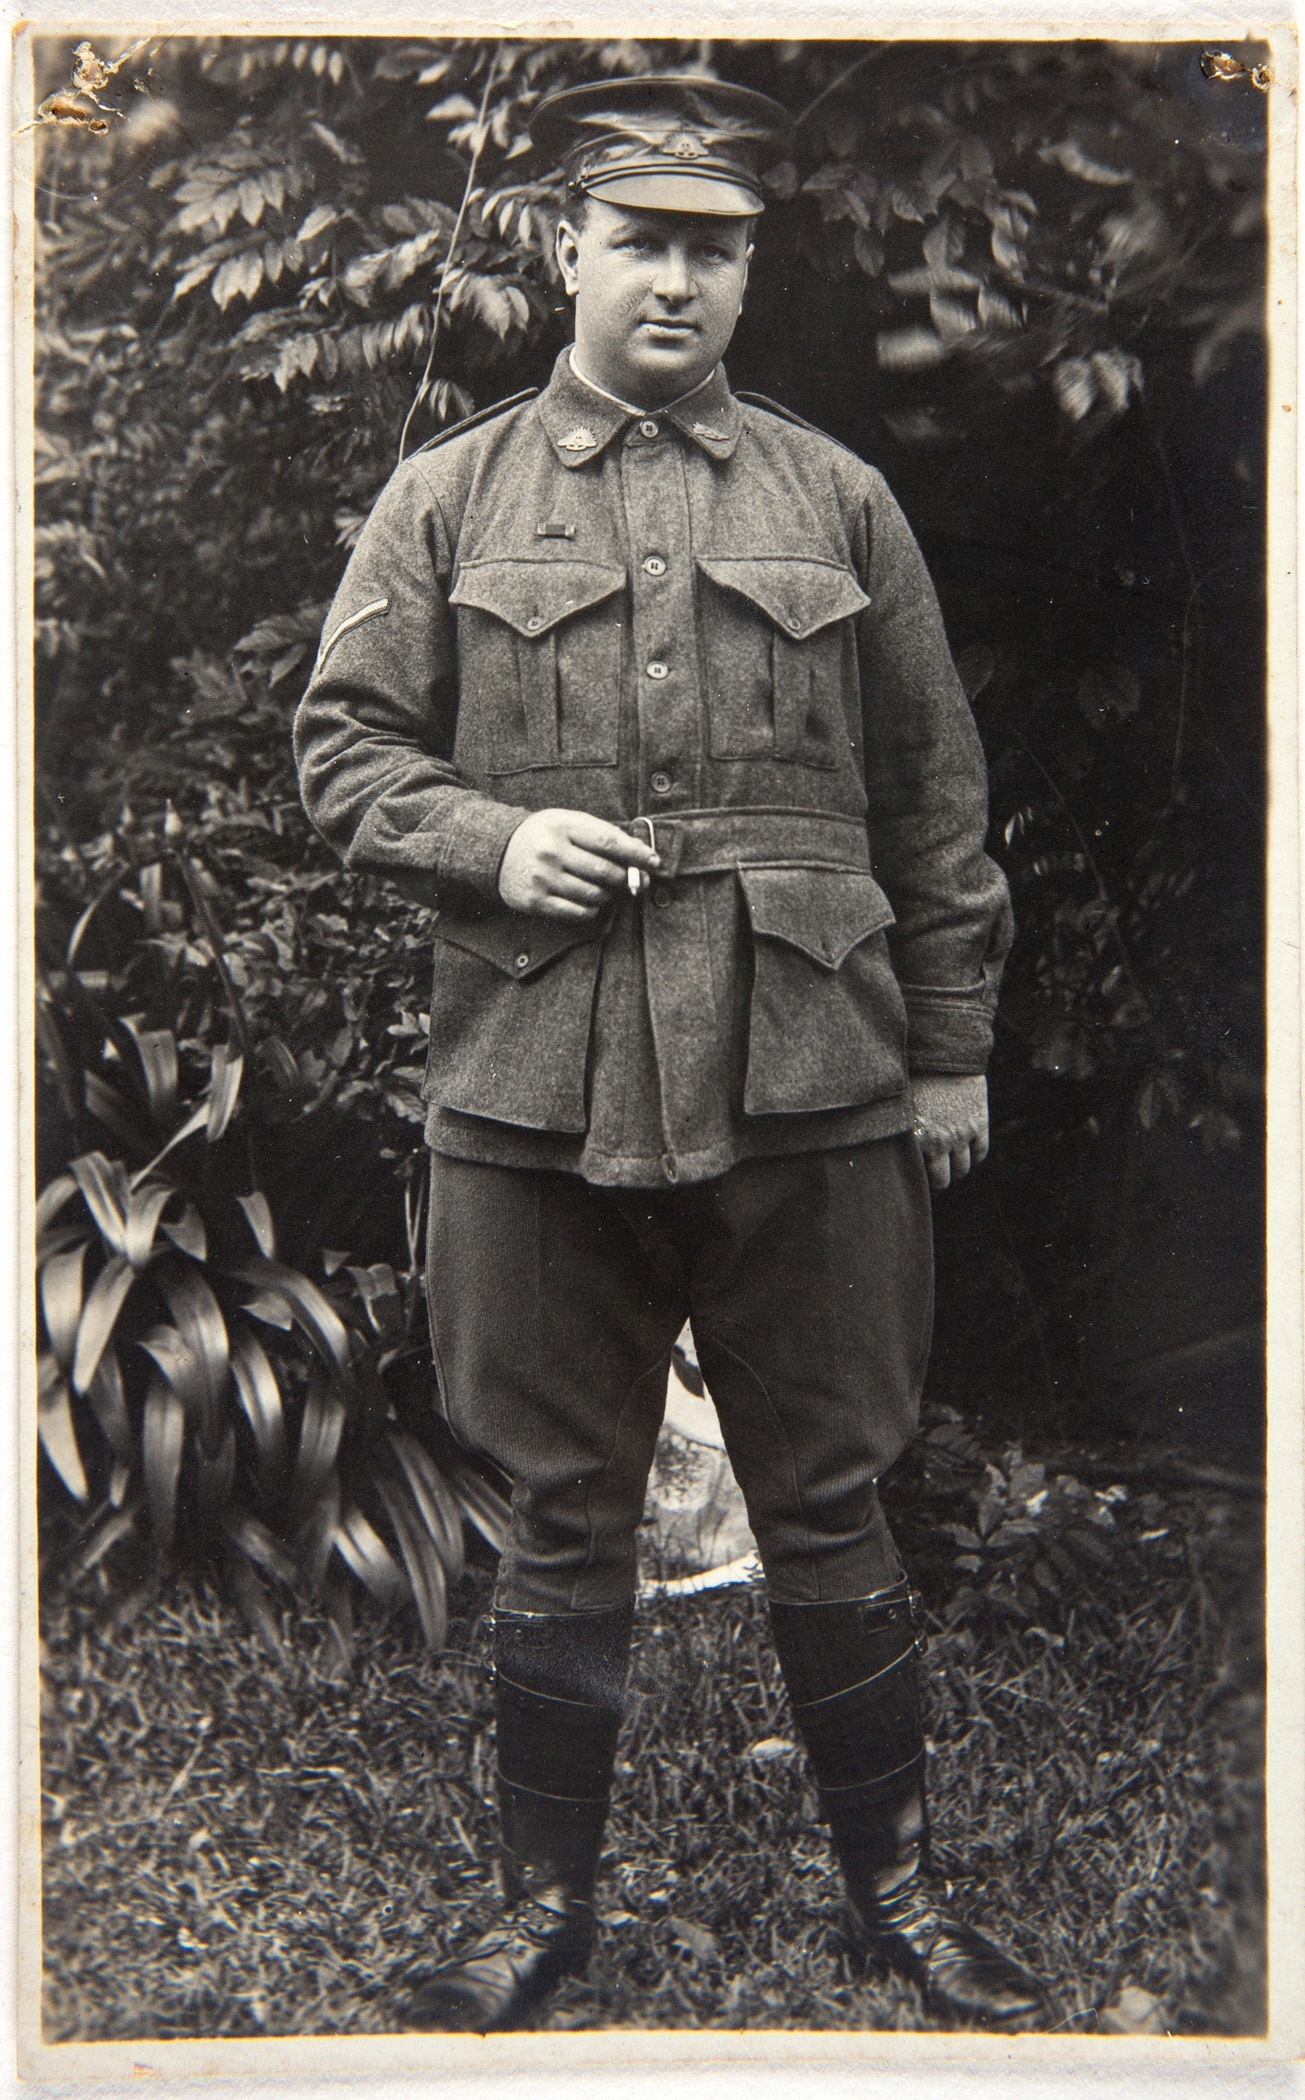 Black and white photo of man in uniform.